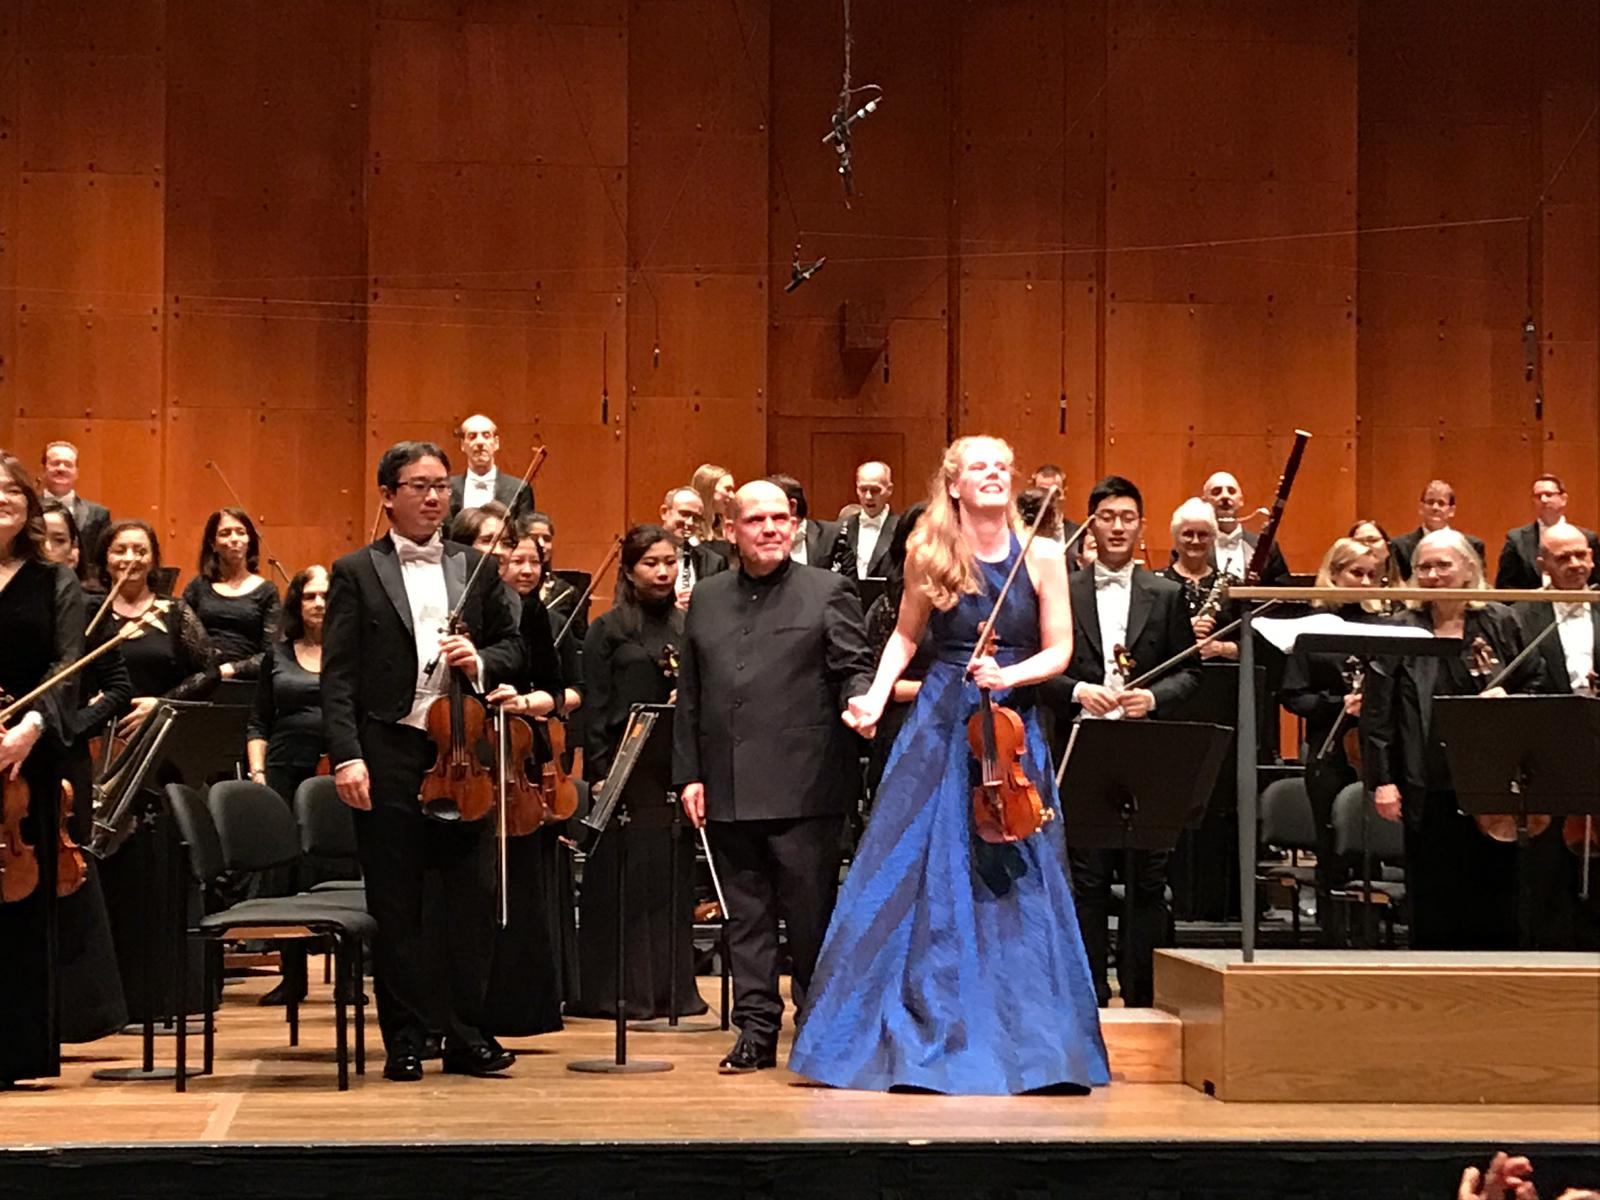 2018 - US, New York Lincoln Center New York Phiharmonic, Jaap van Zweden